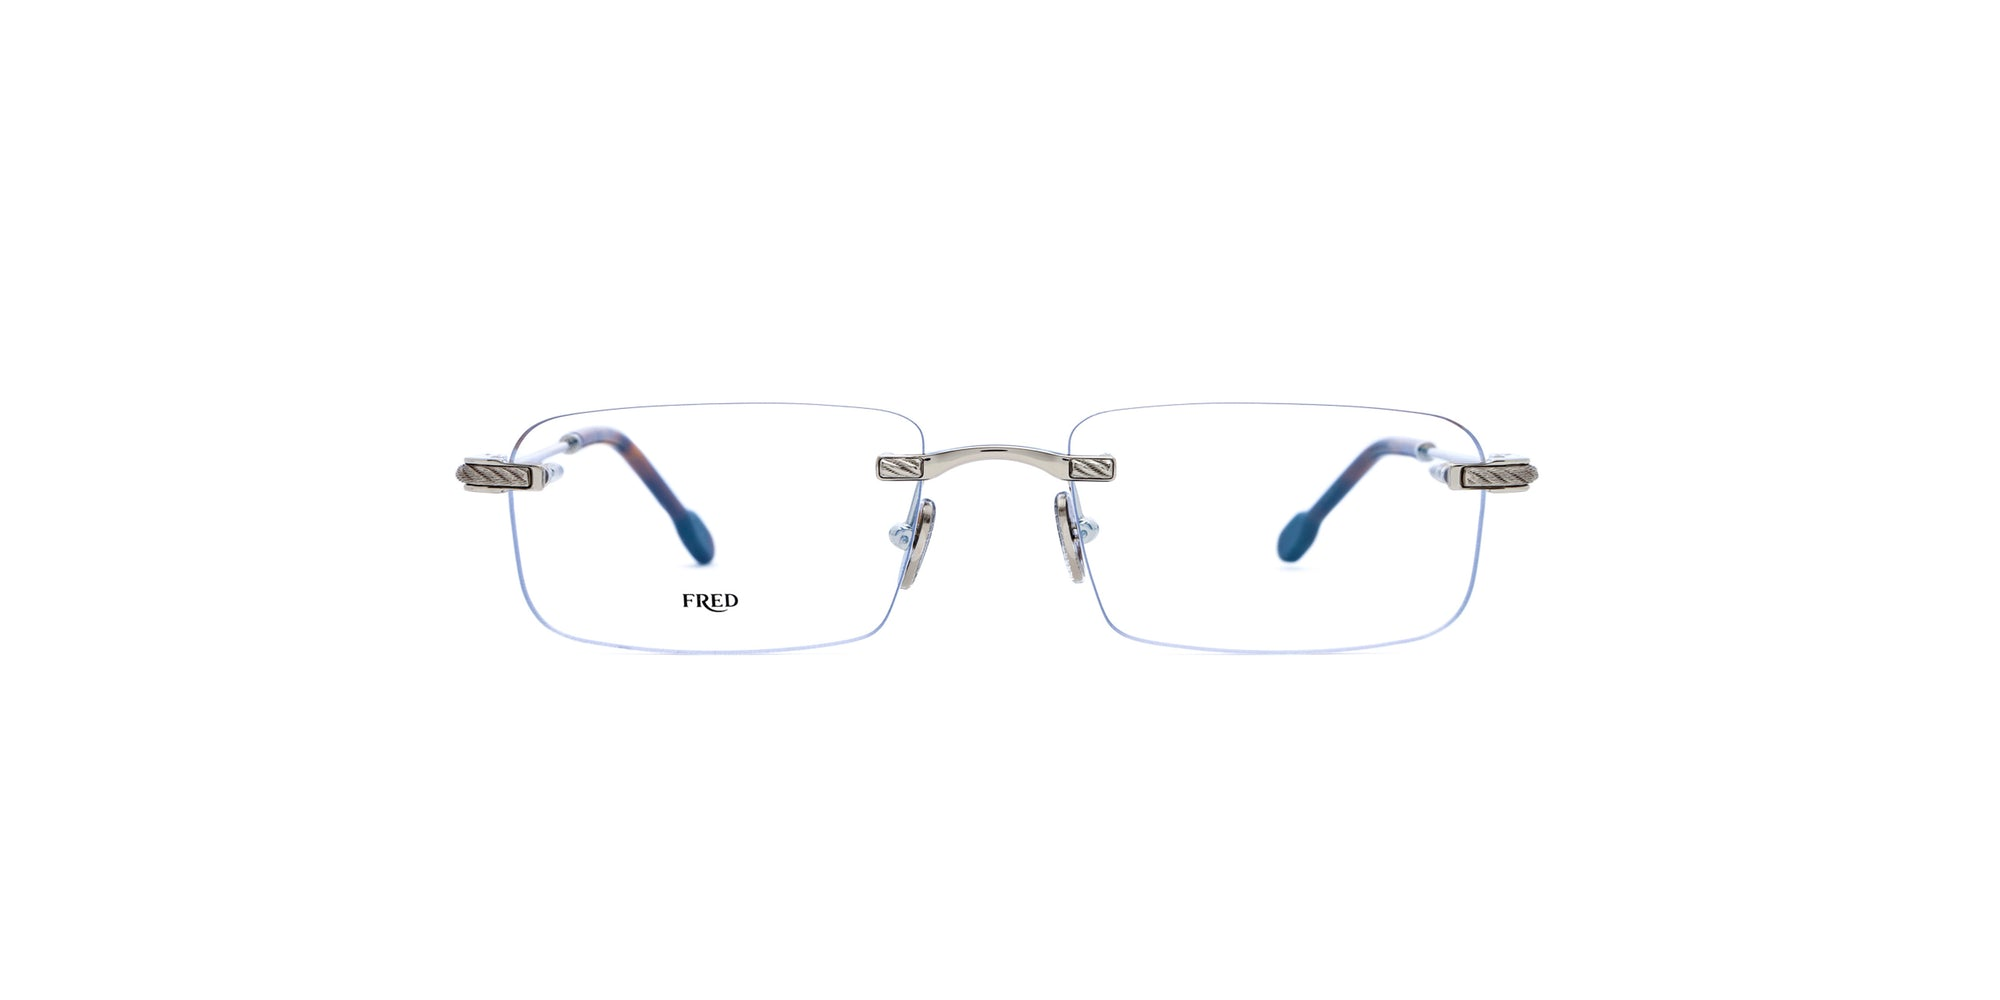 Fred - FG50012U Silver Rimless Unisex Eyeglasses - 56mm-Eyeglasses-Designer Eyes